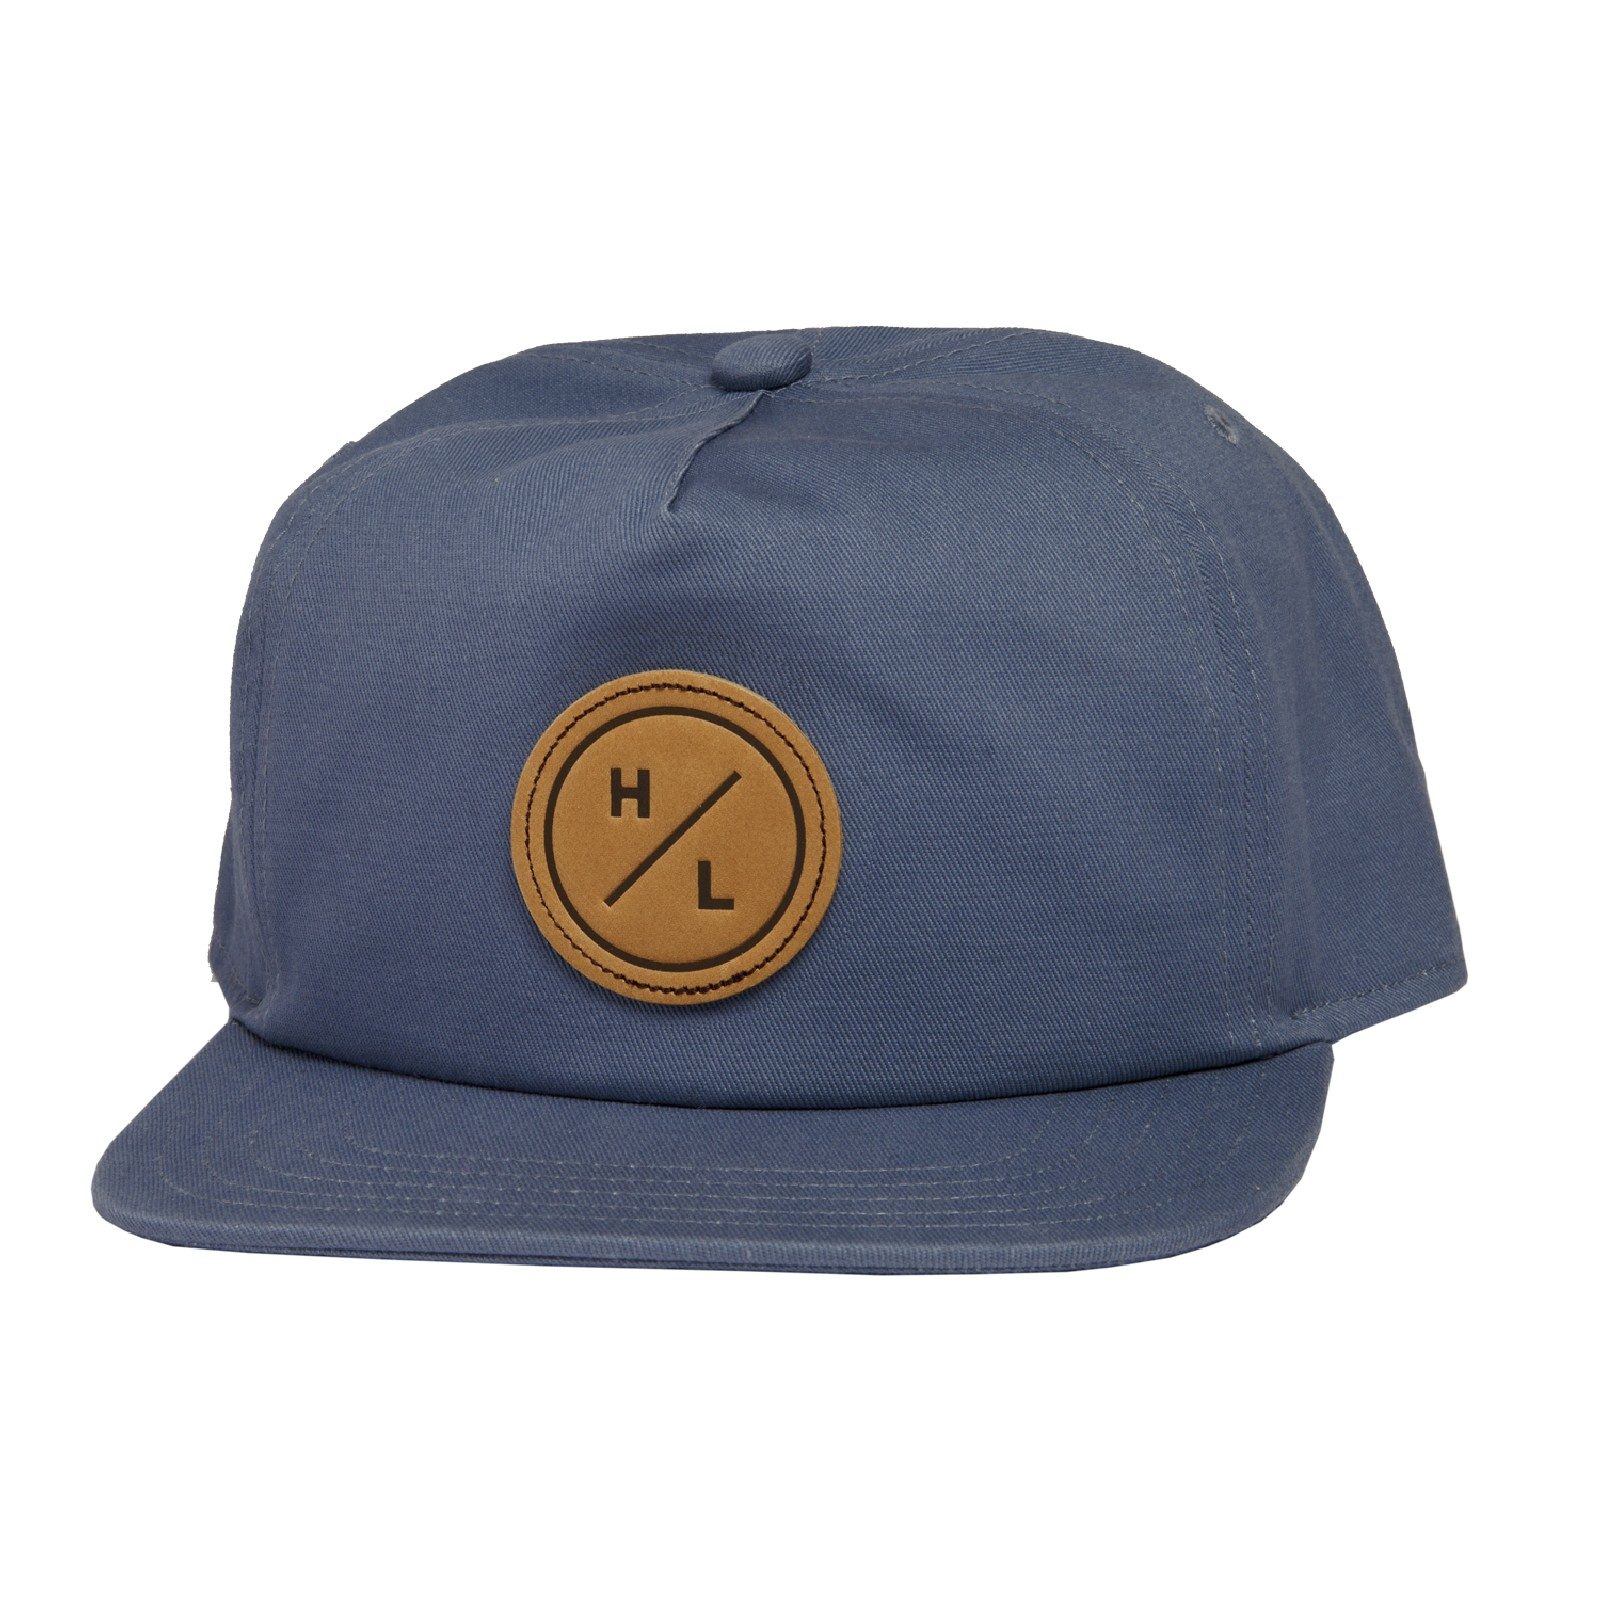 LEATHER PATCH SNAPBACK HAT HYPERLITE 2019